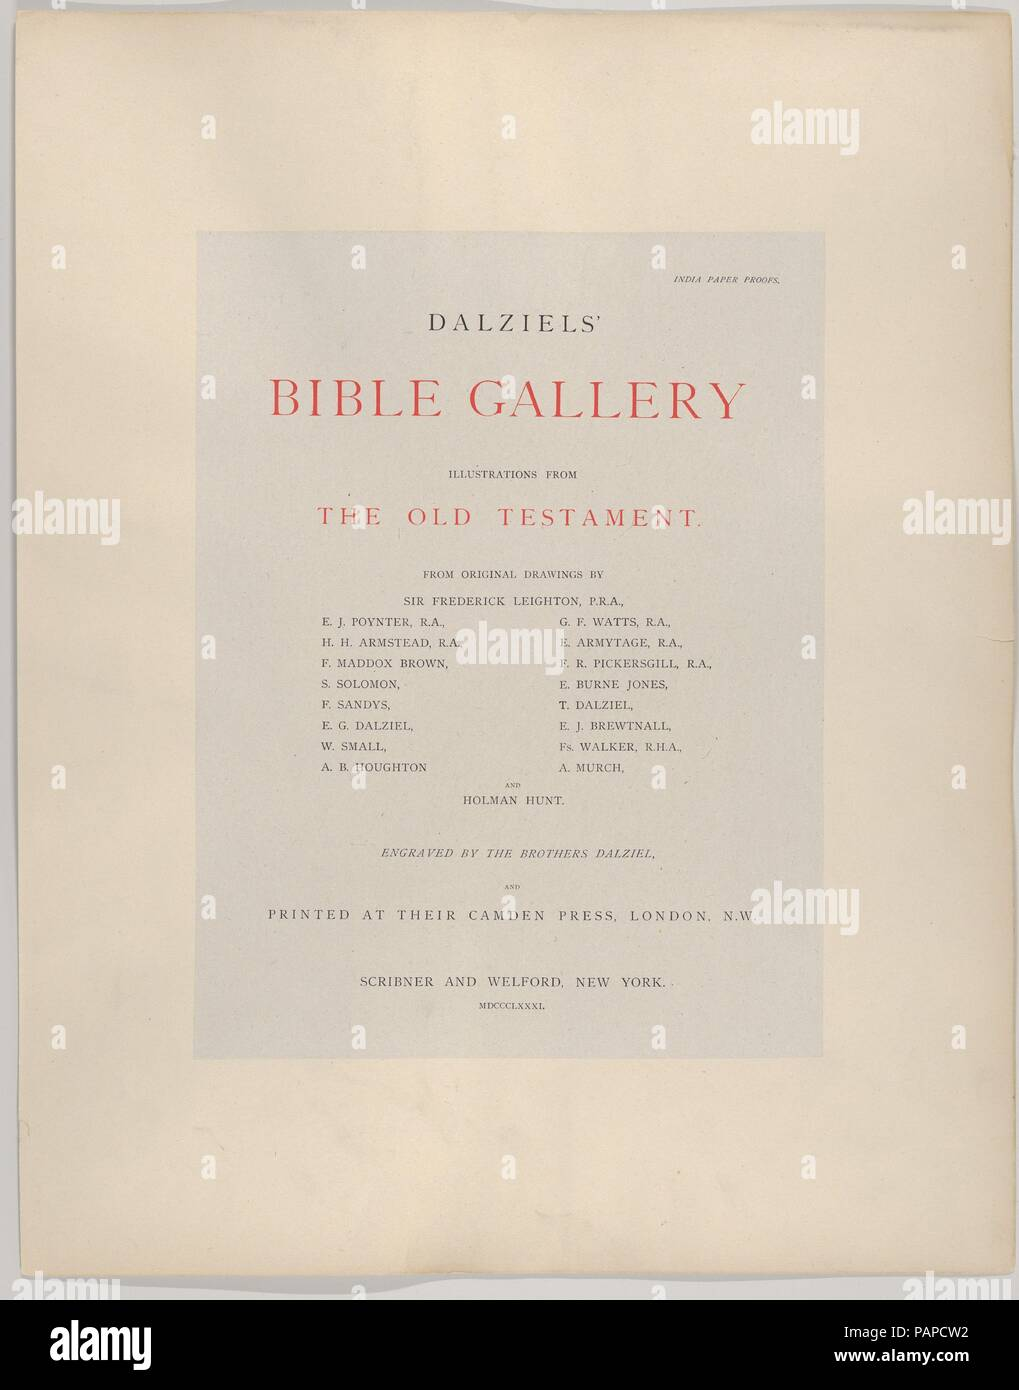 Dalziels' Bible Gallery: Illustrations from the Old